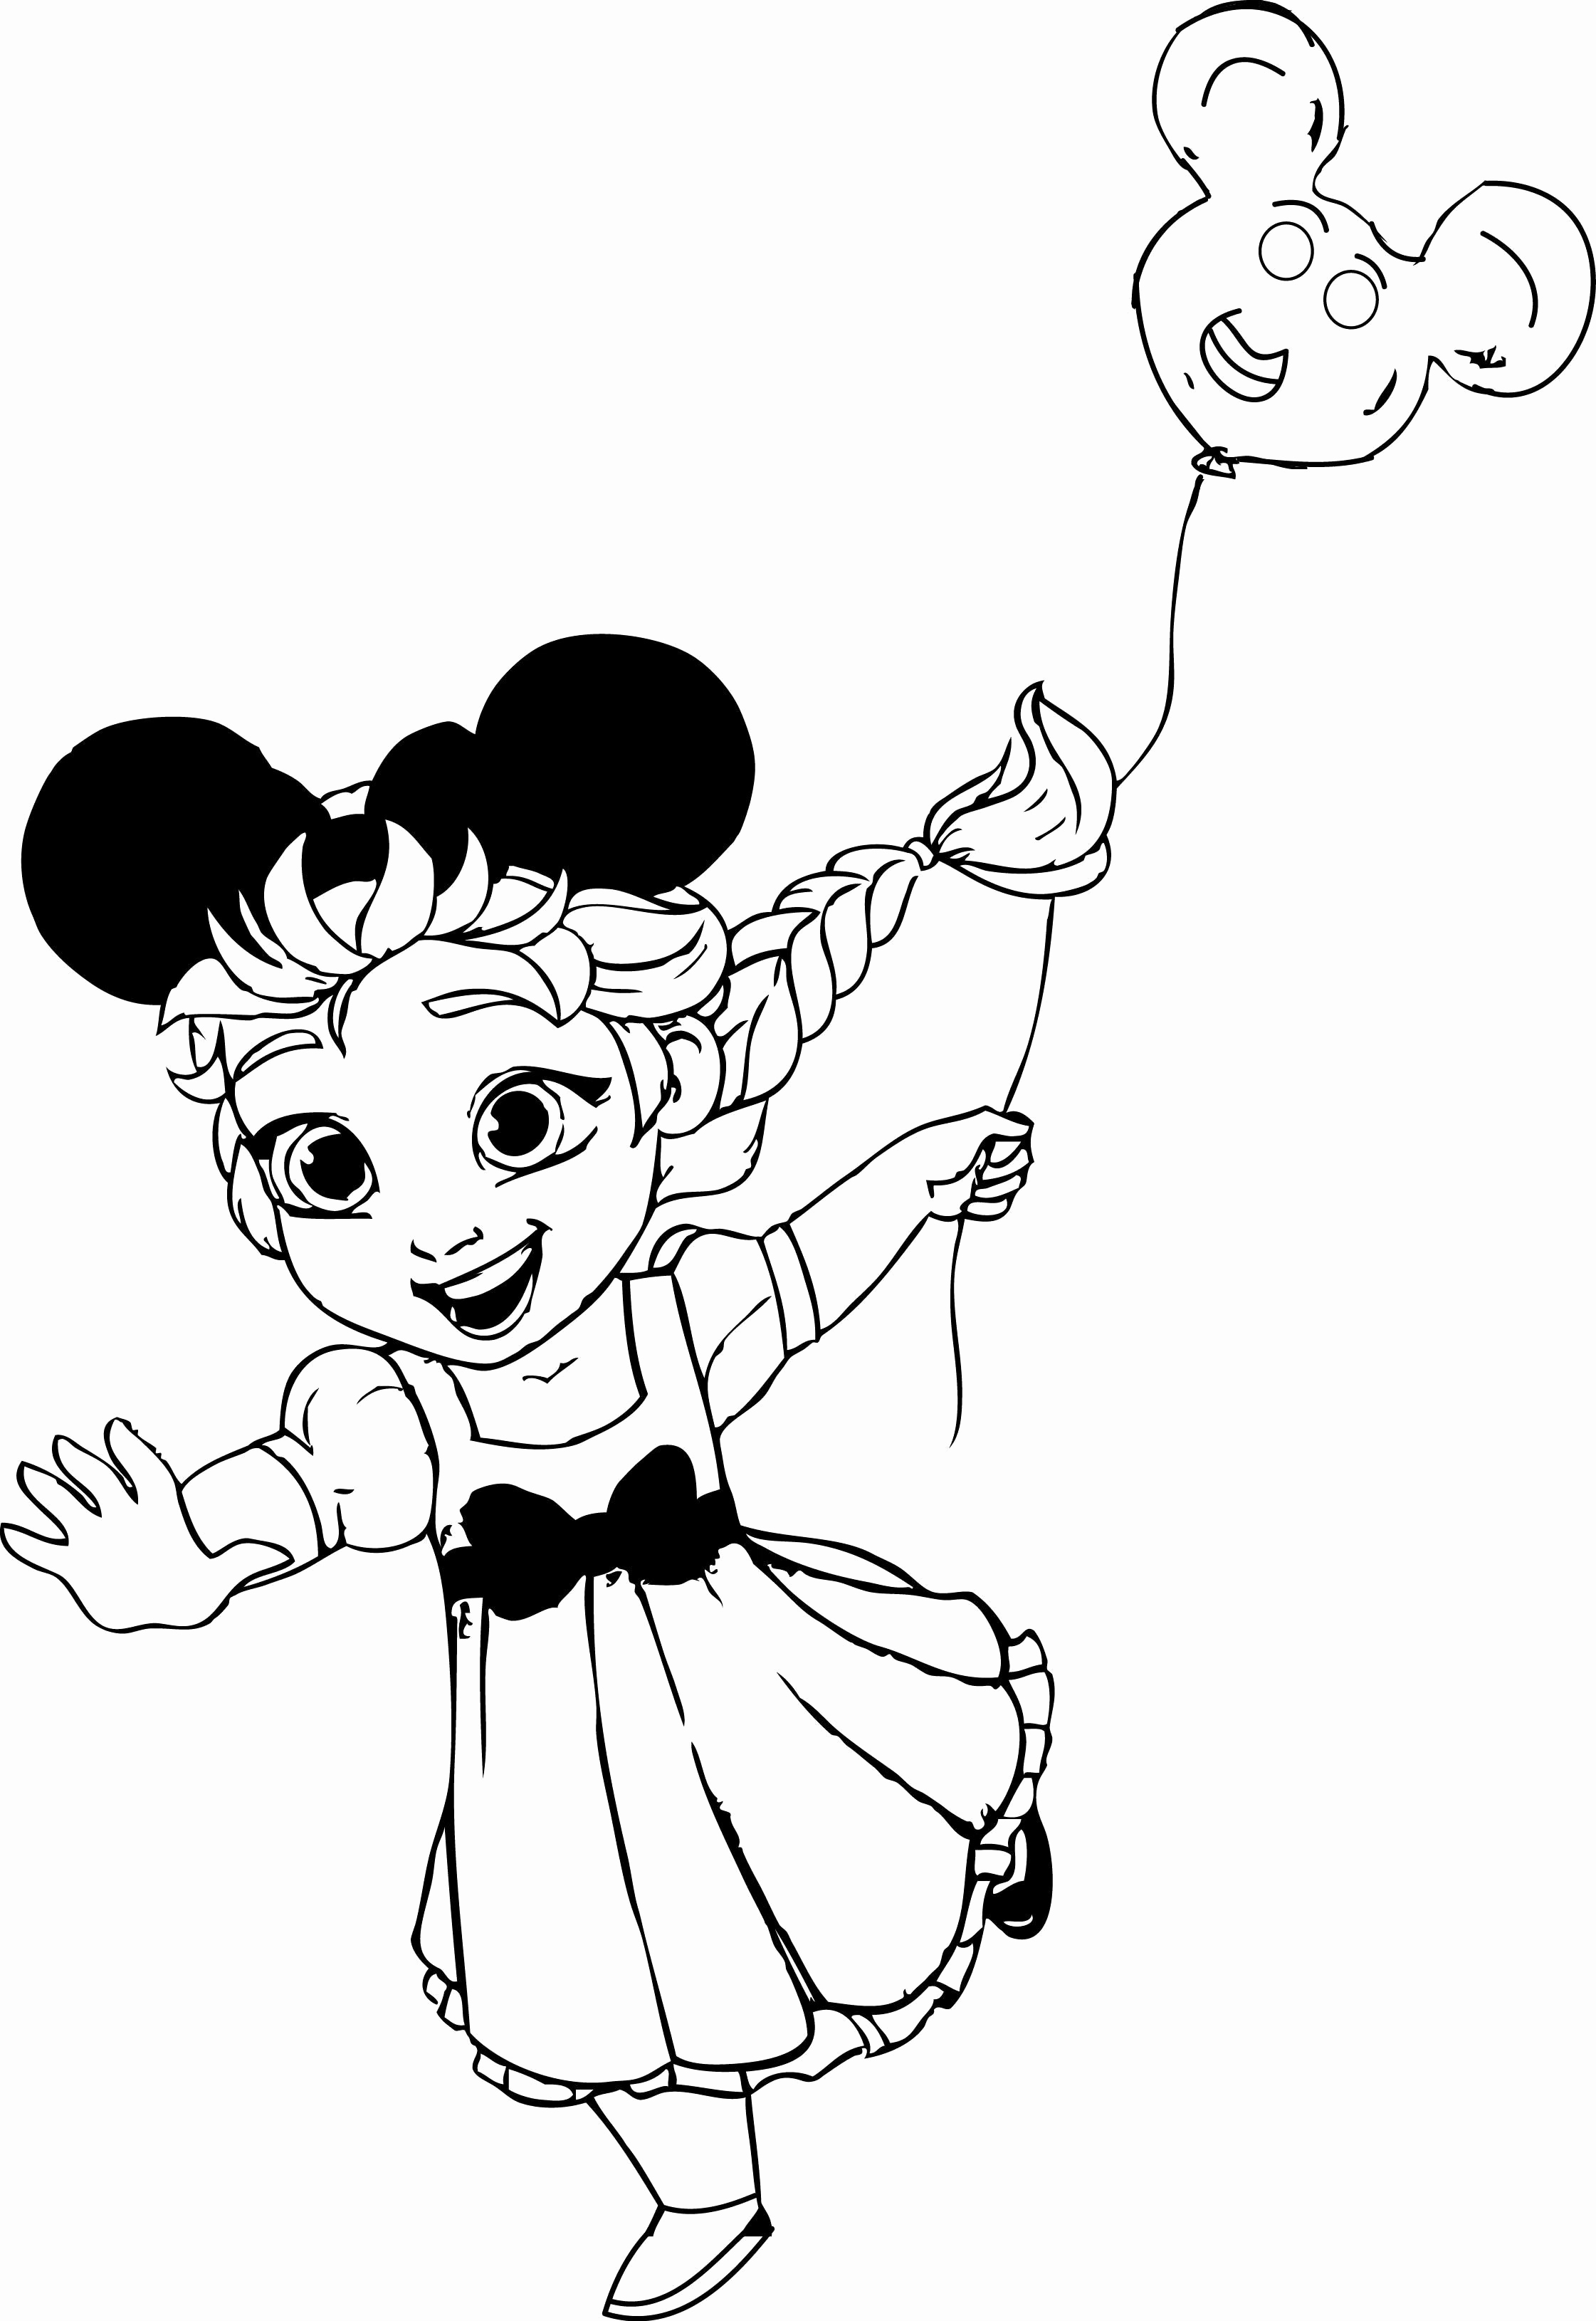 coloring pictures of frozen characters frozen 2 coloring pages anna sheapeterson of characters frozen coloring pictures